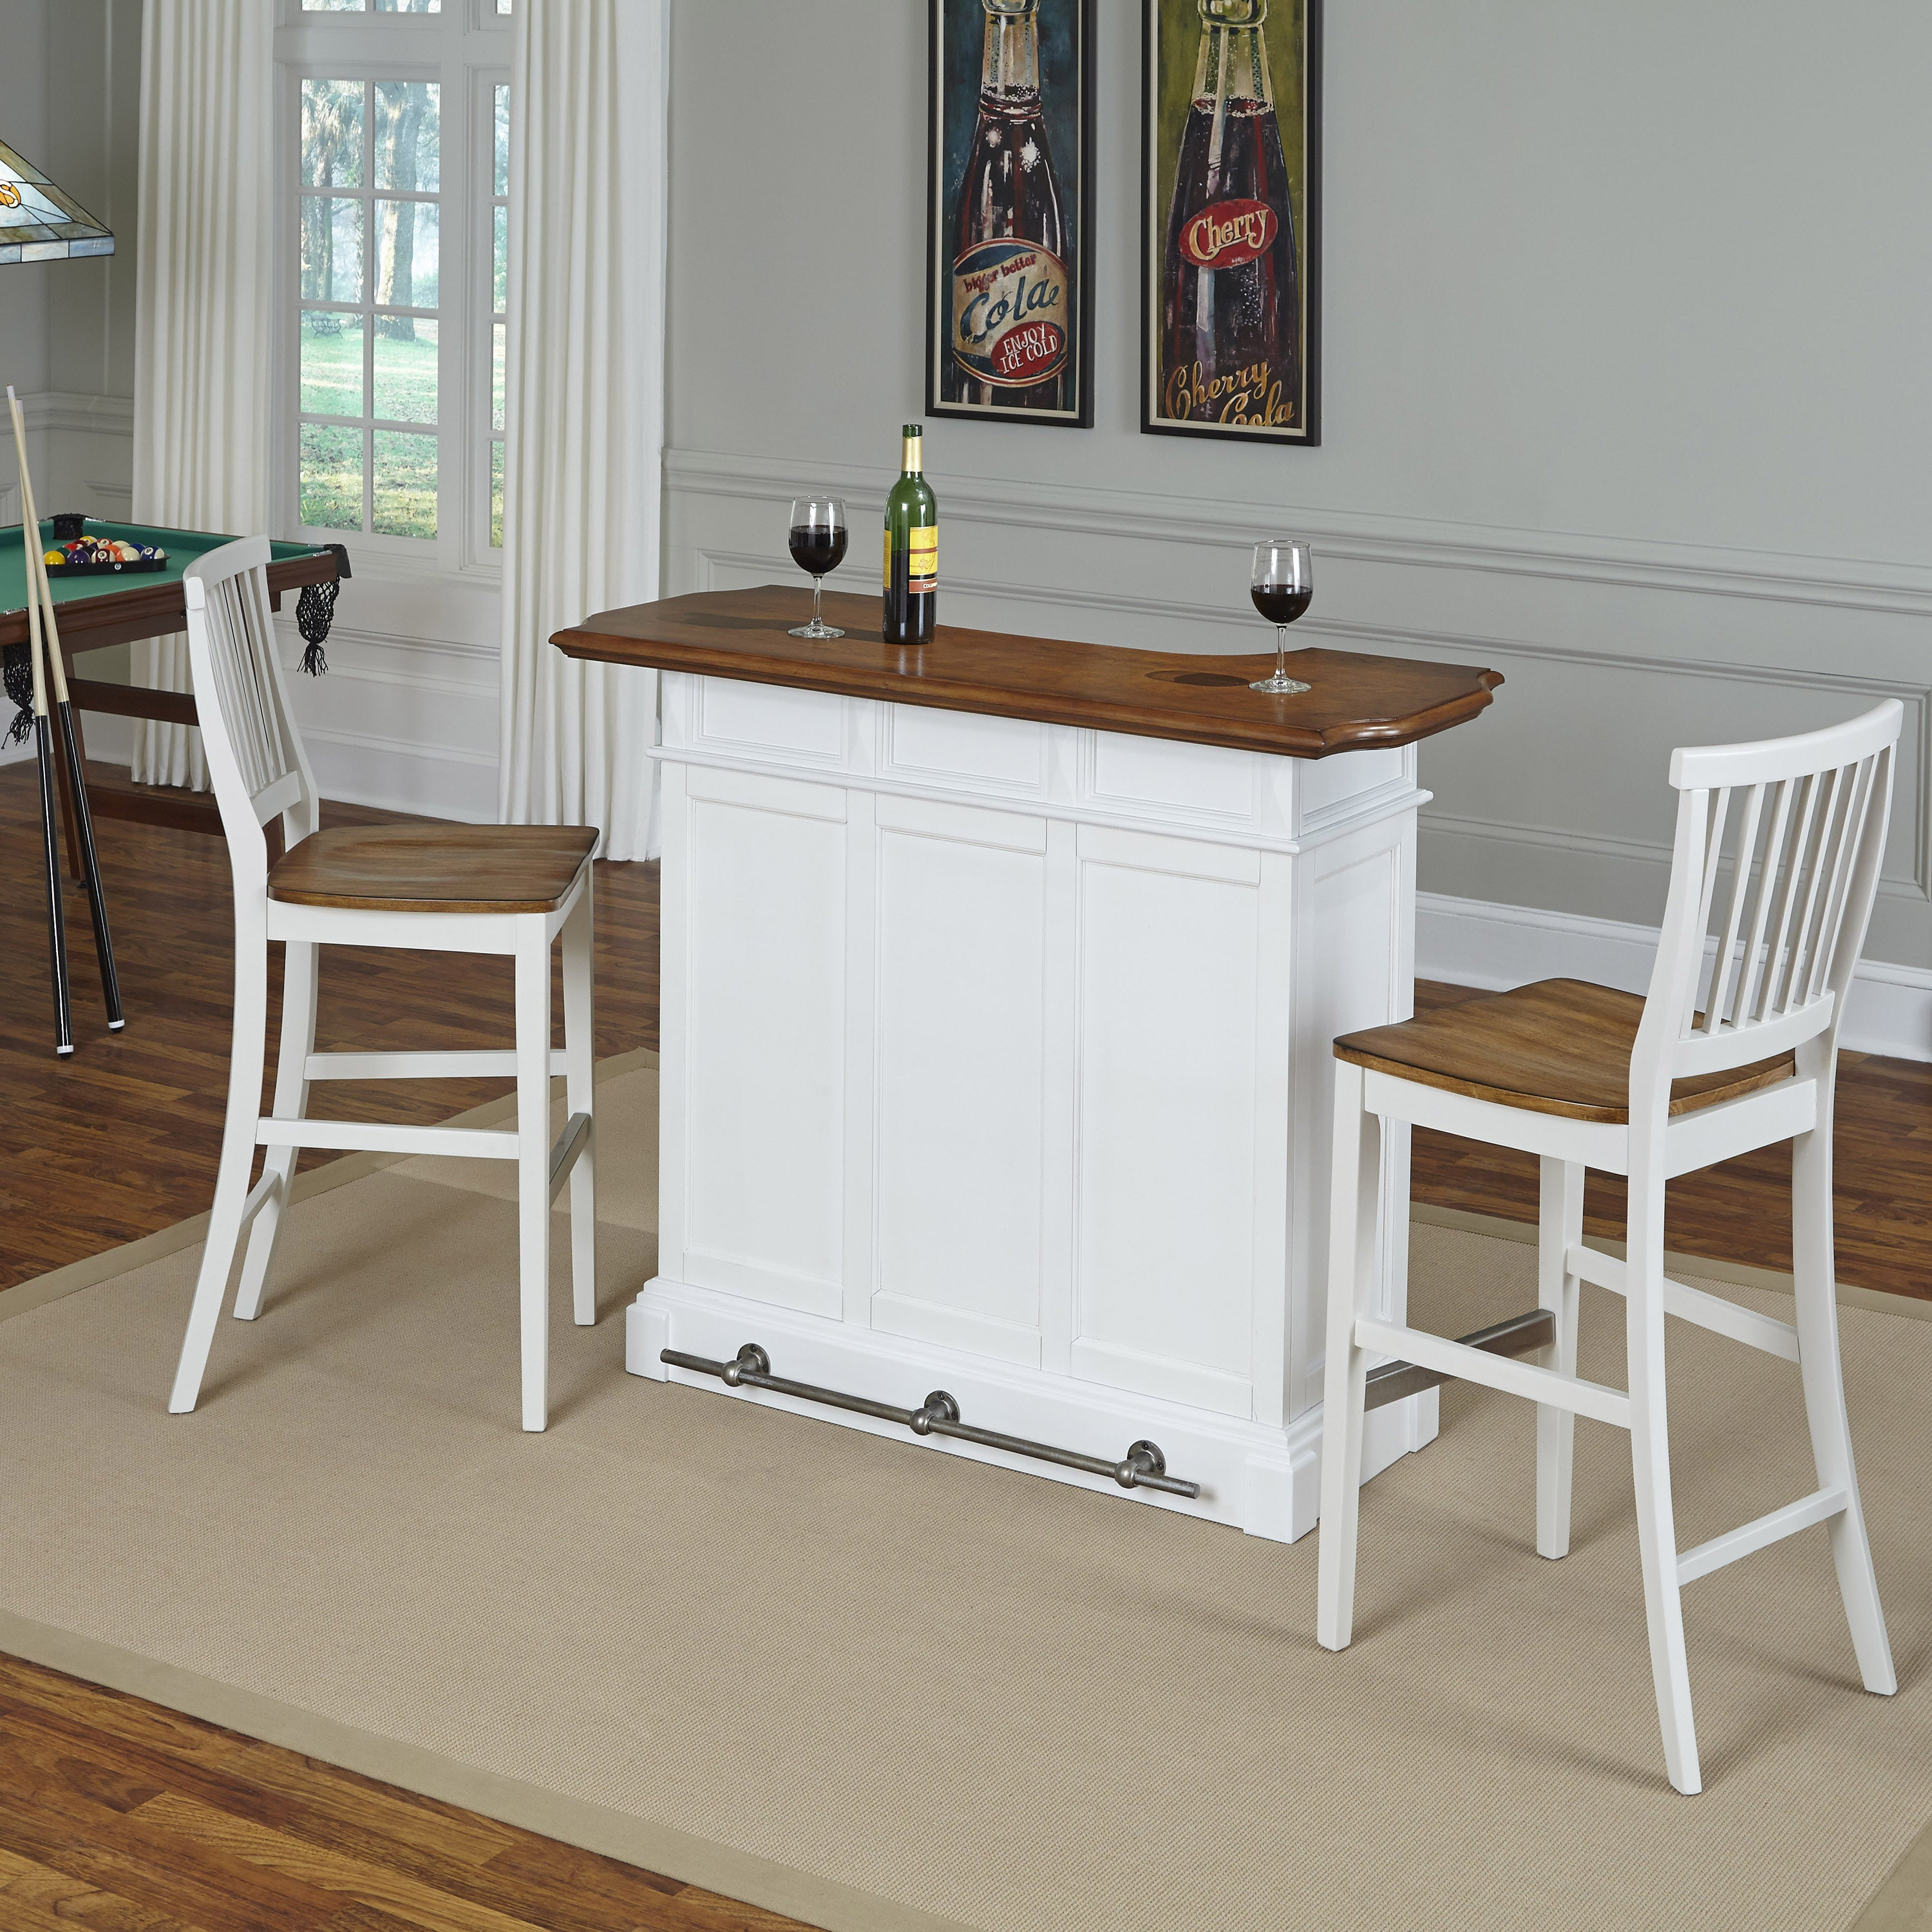 Americana Bar And Two Stools By Home Styles